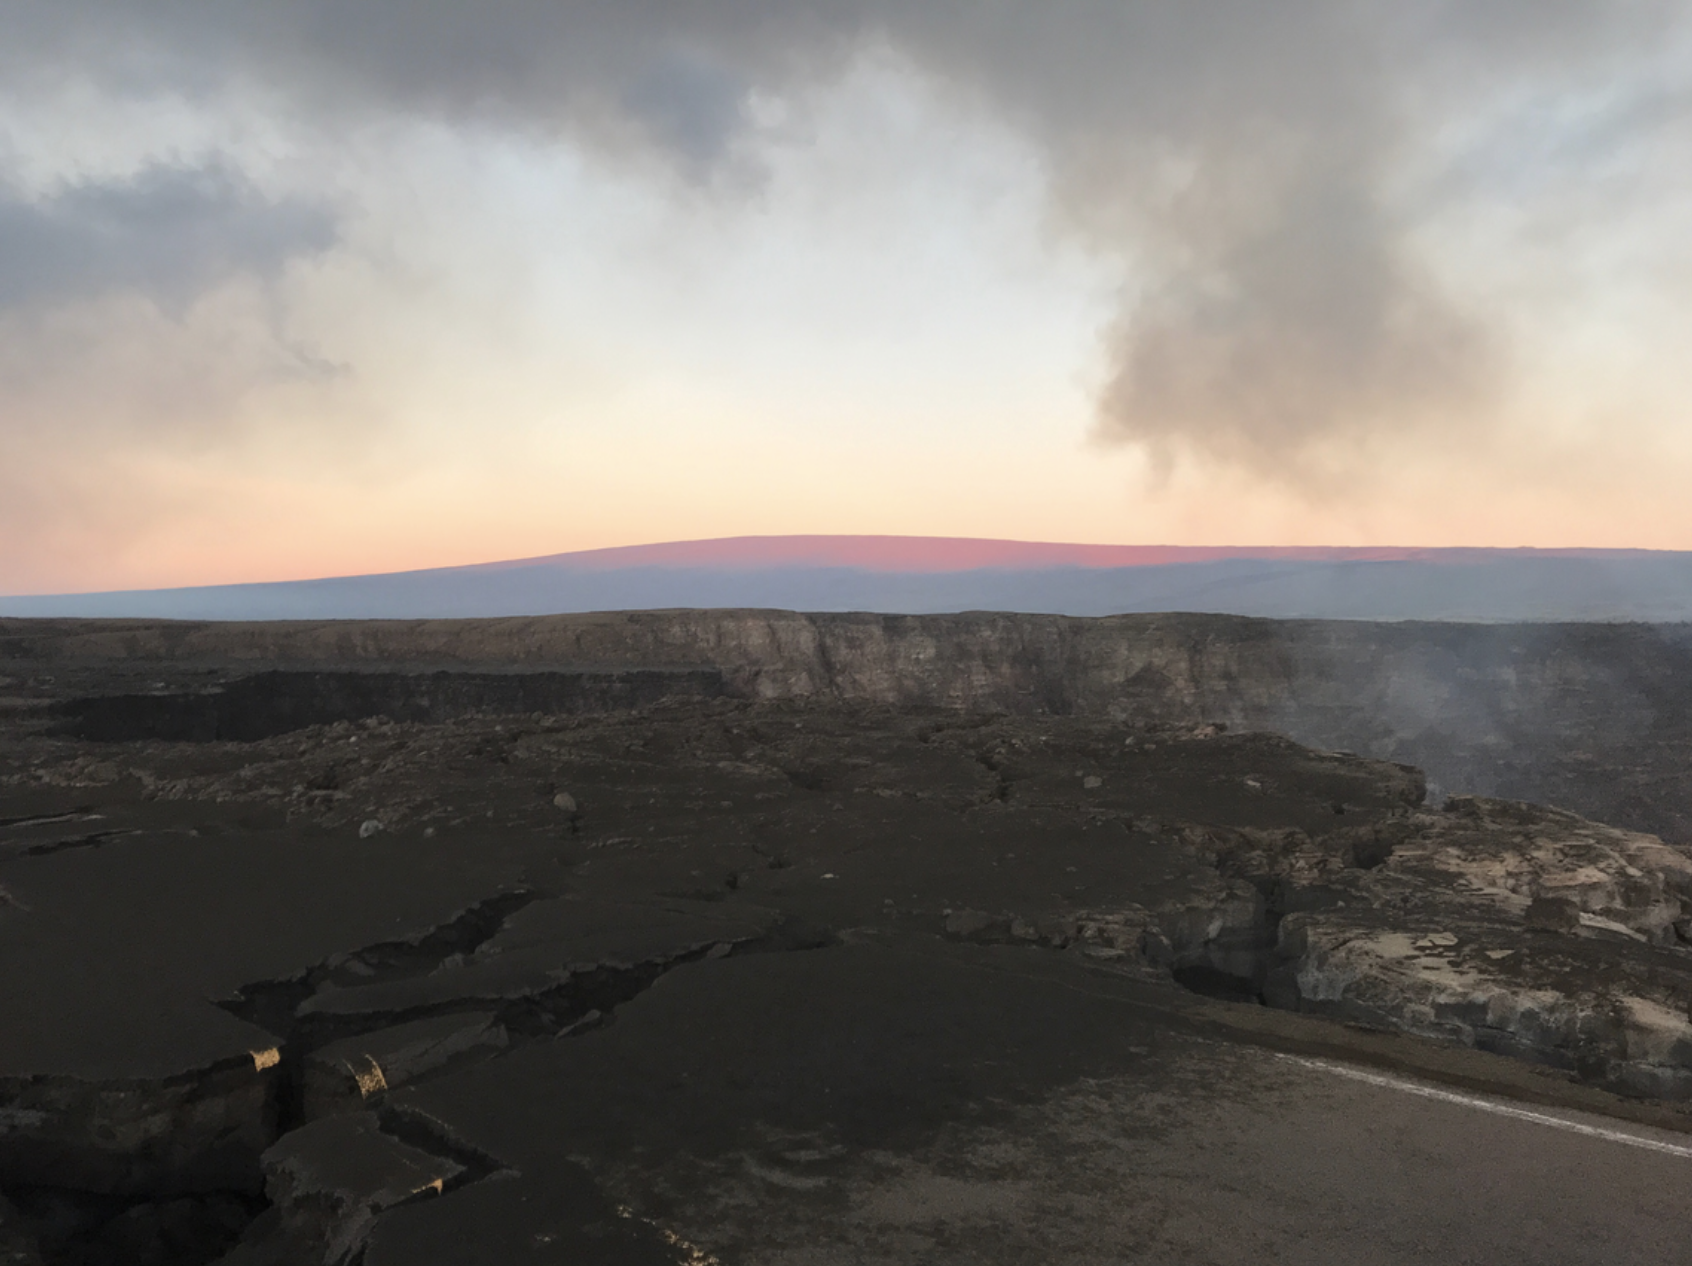 Swarm of 130 Small Earthquakes Detected at Mauna Loa